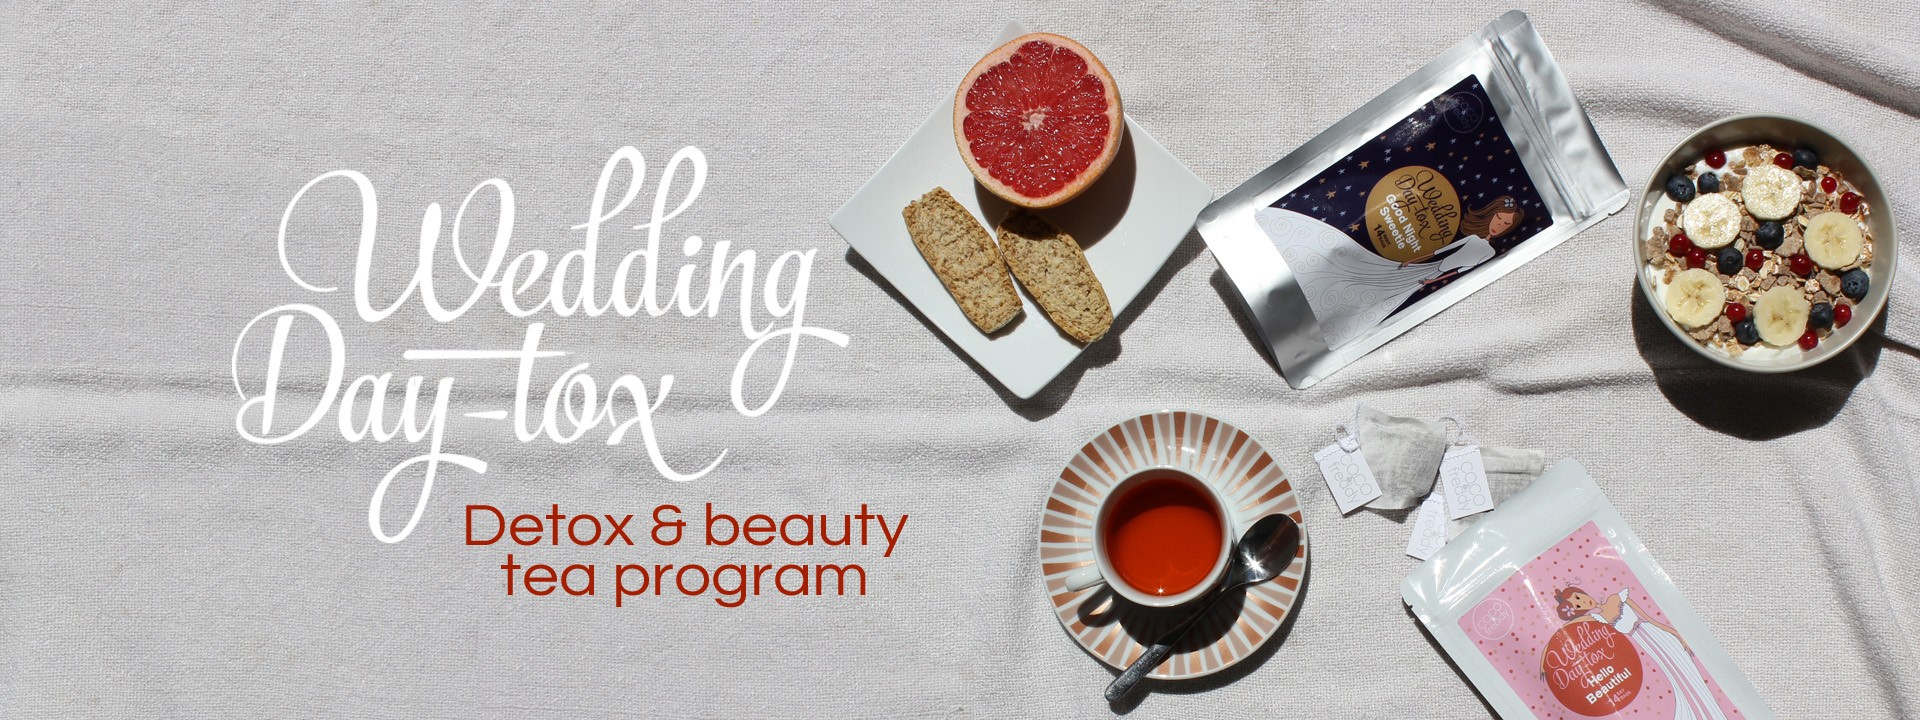 Wedding Day-tox, detox and beauty tea program to get ready for a wedding, when you're the bride, family or friend.